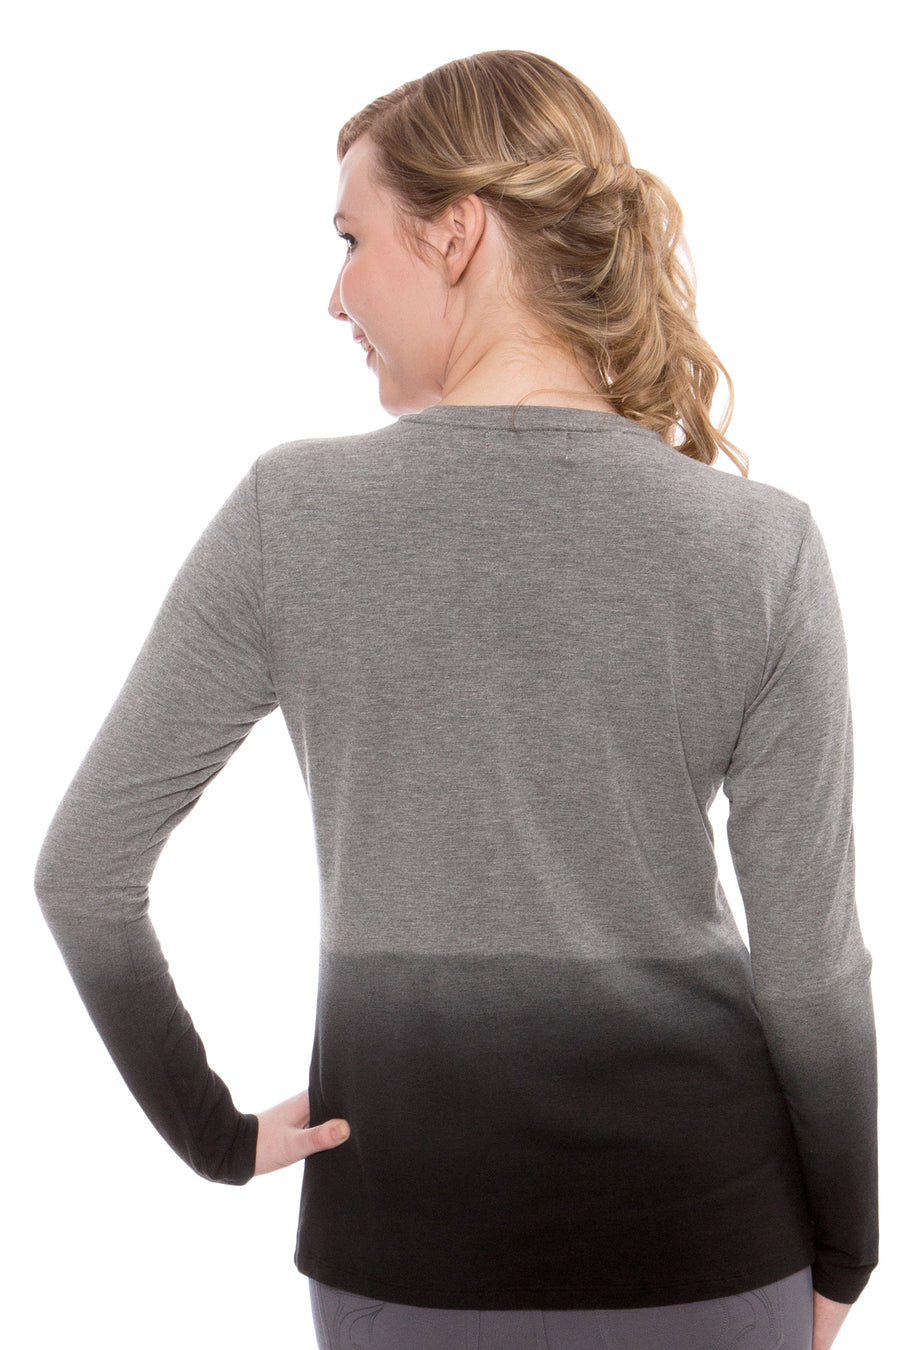 Bellatee - Women's Bamboo Viscose Long Sleeve Top - TexereSilk